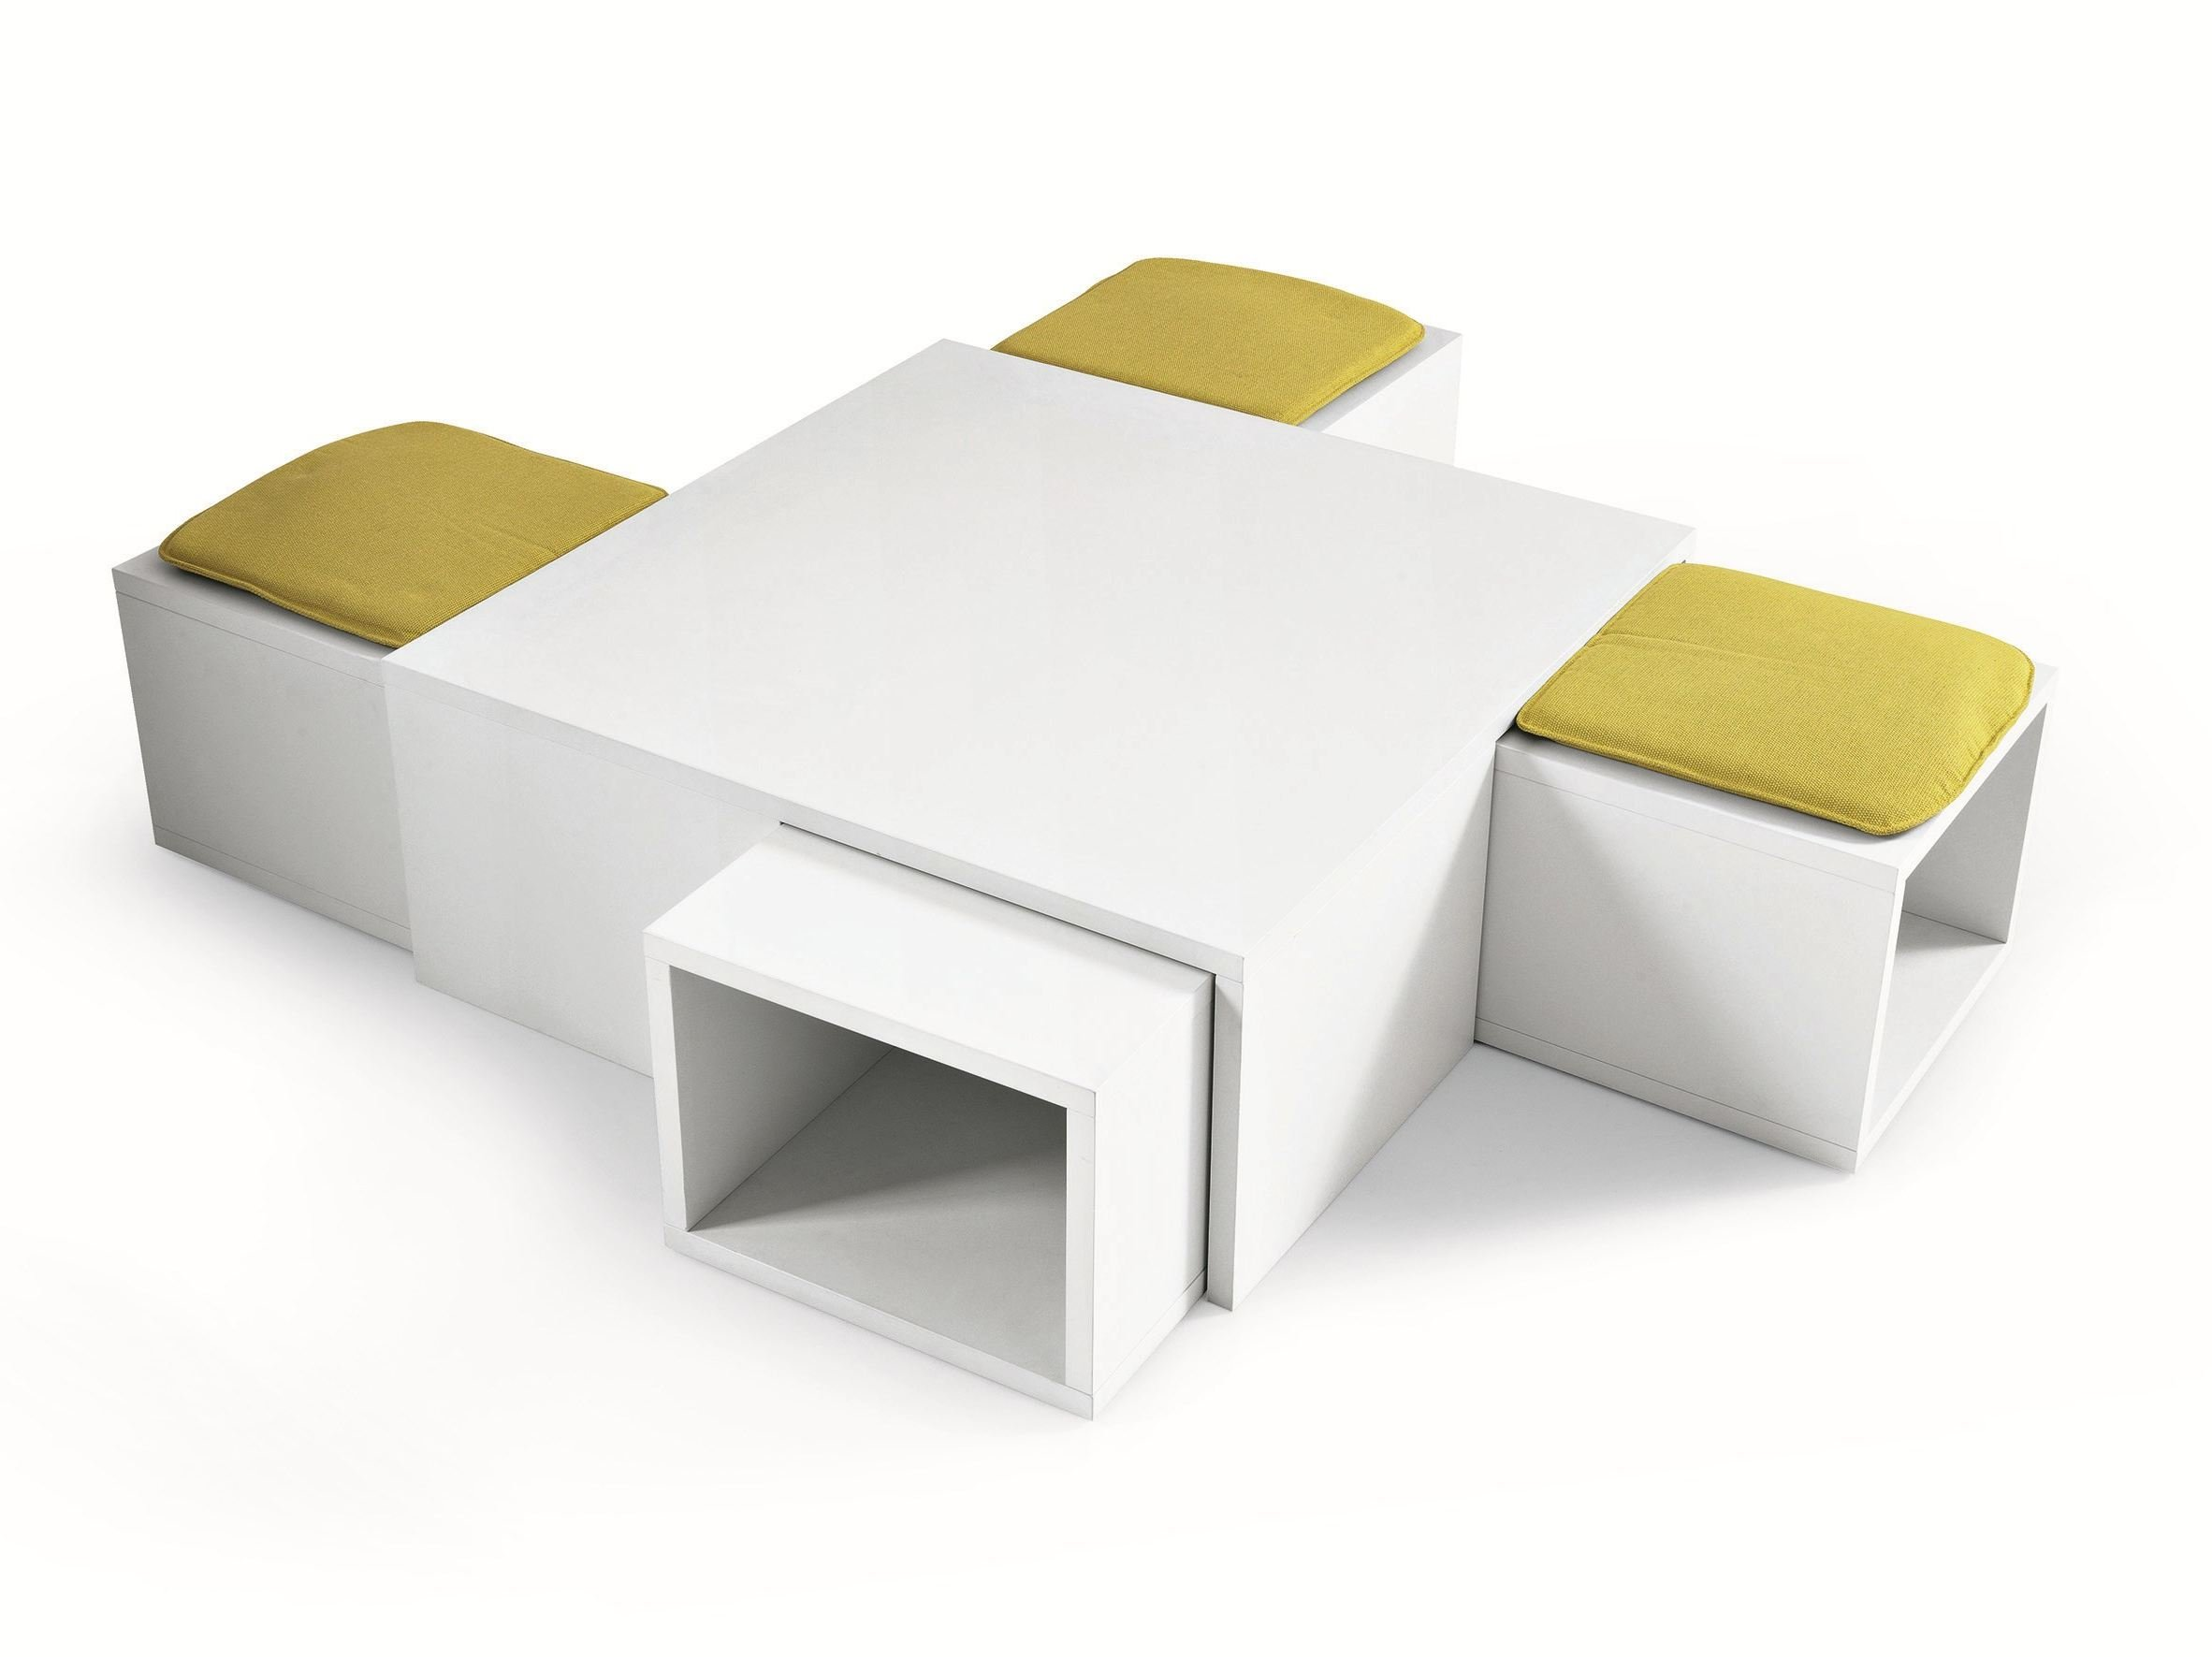 Pouf table basse 1 4 by misuraemme design renato forti - Table basse avec 6 pouf ...